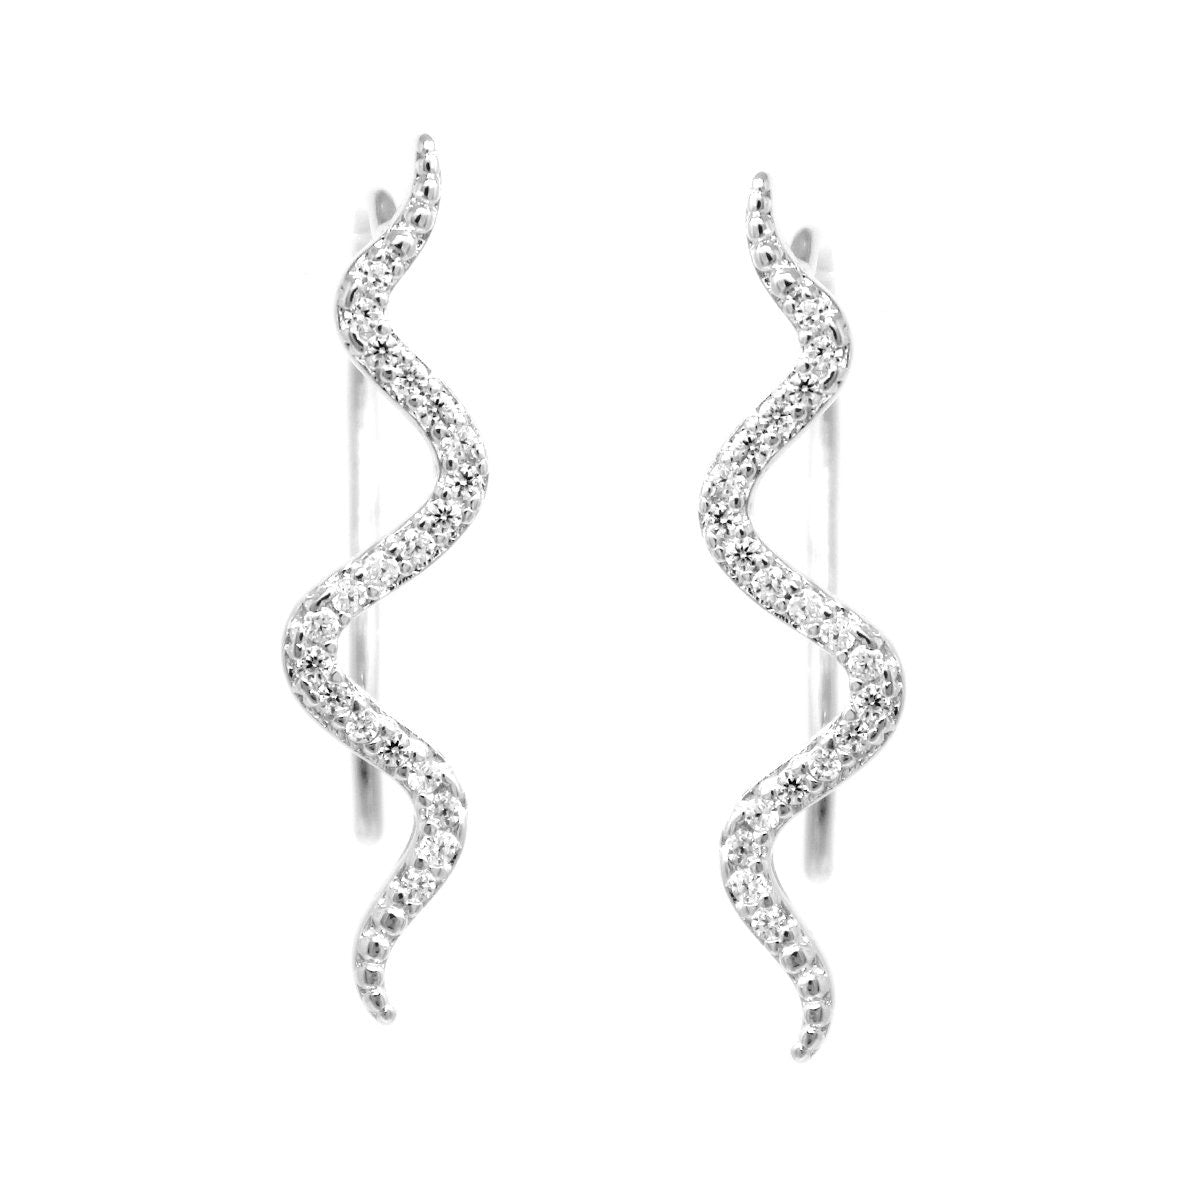 BITZ CZ Pave Snake Ear Crawlers Earrings